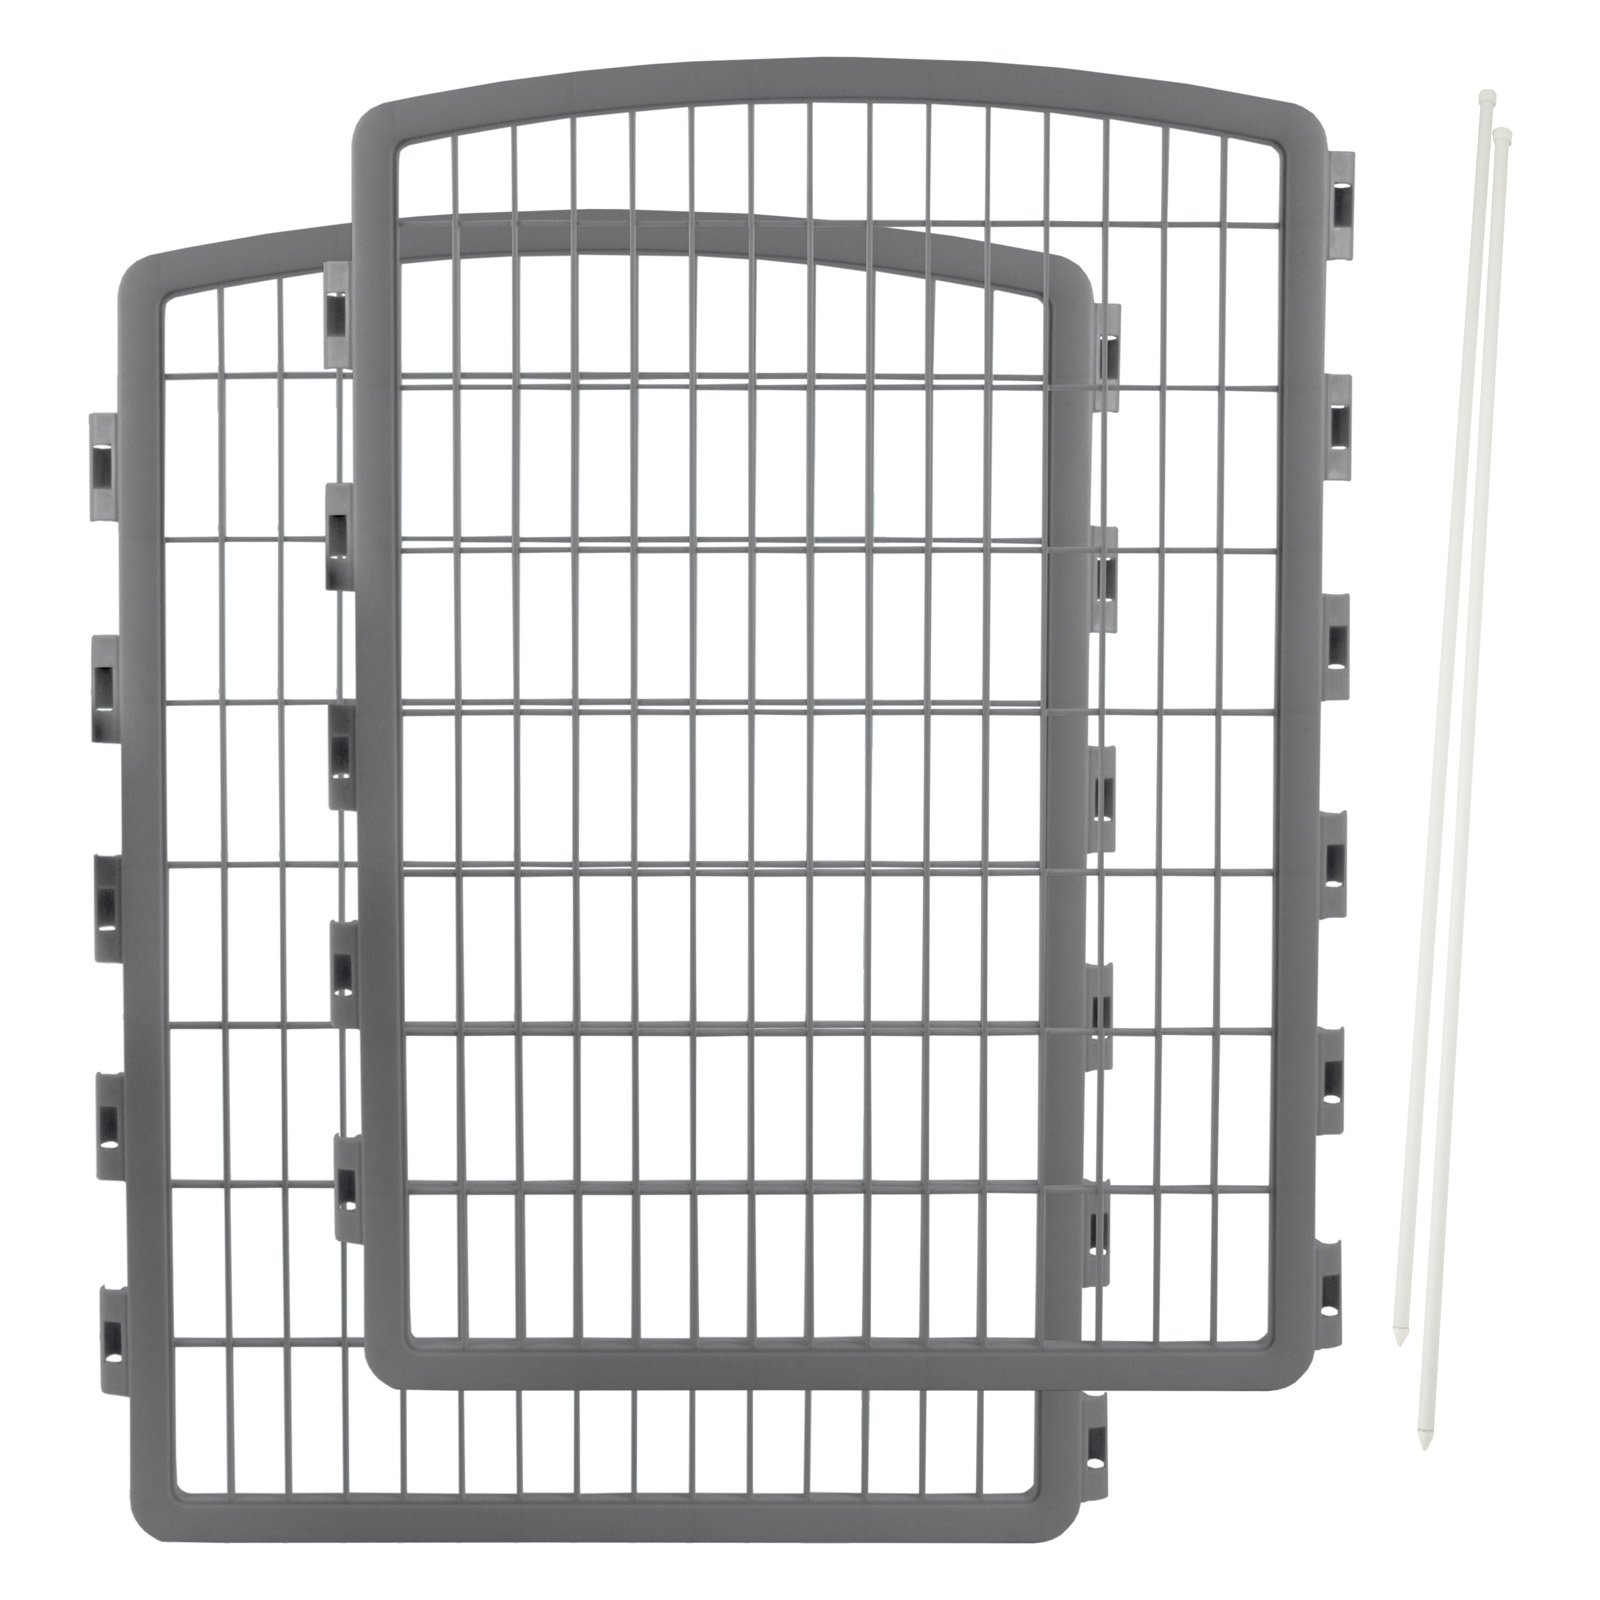 IRIS CI-908 Pet Pen Expansion Kit 2-Pack, Gray